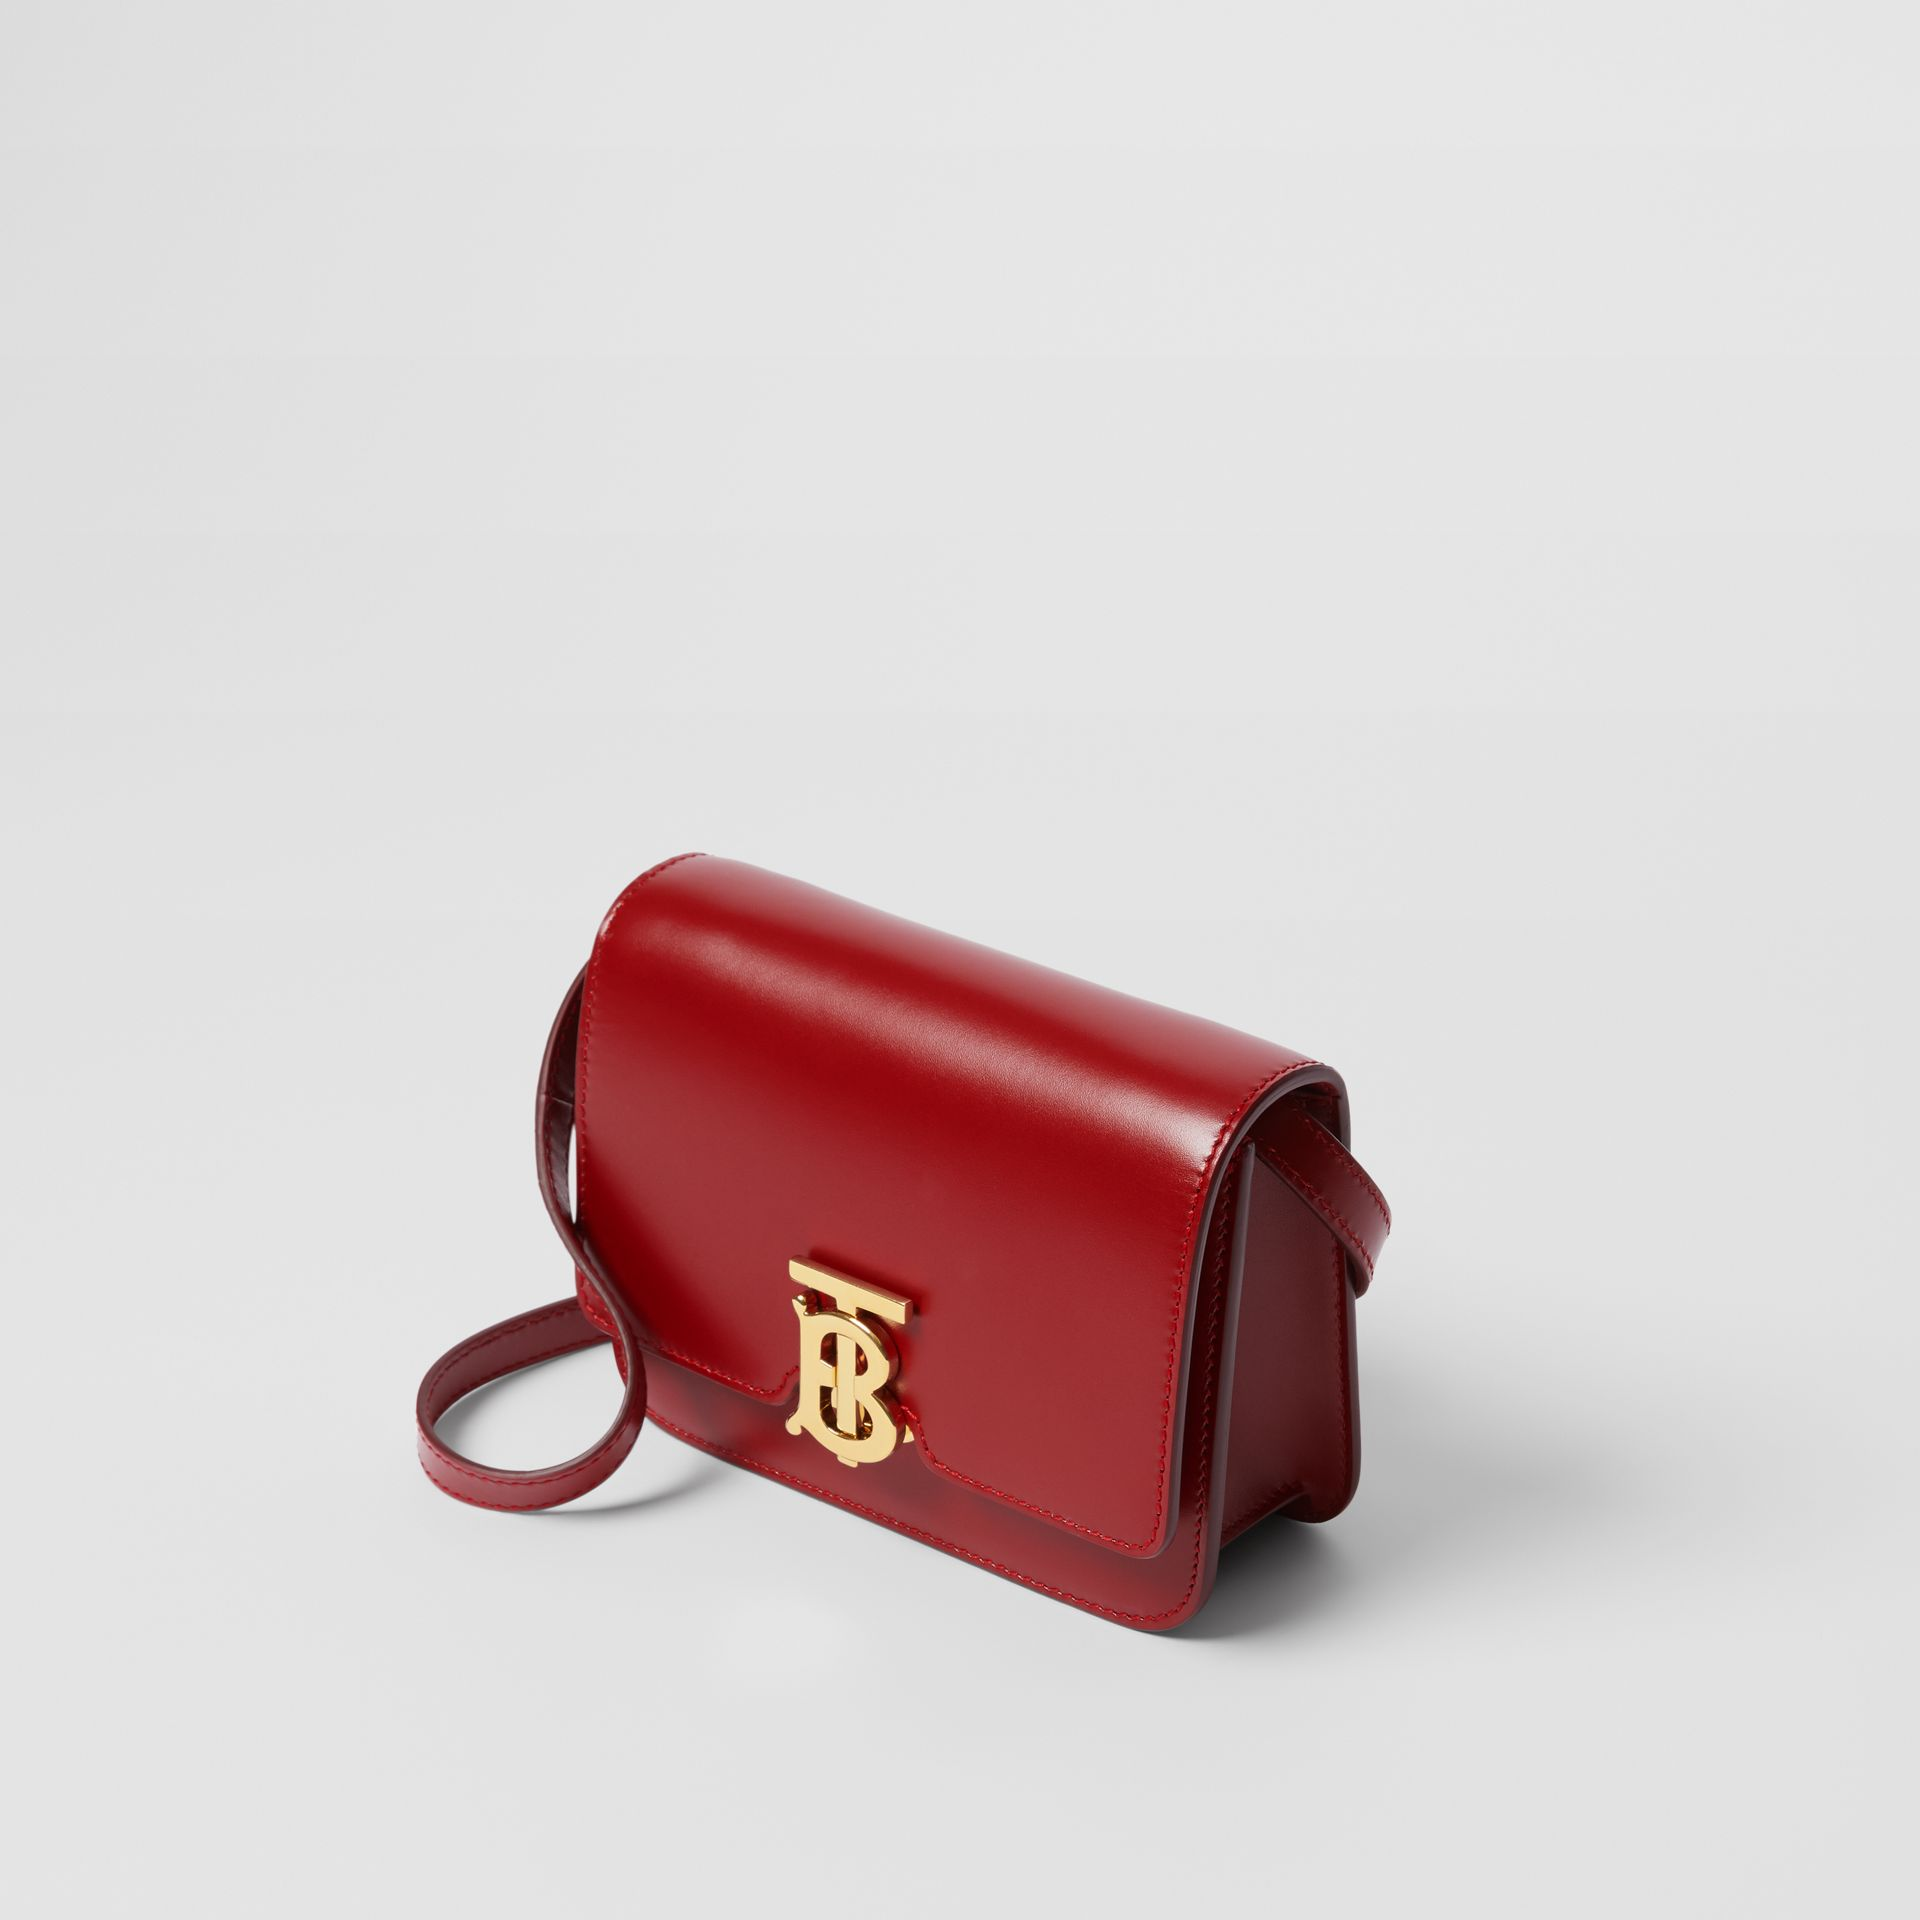 Mini Leather TB Bag in Dark Carmine - Women | Burberry - gallery image 3